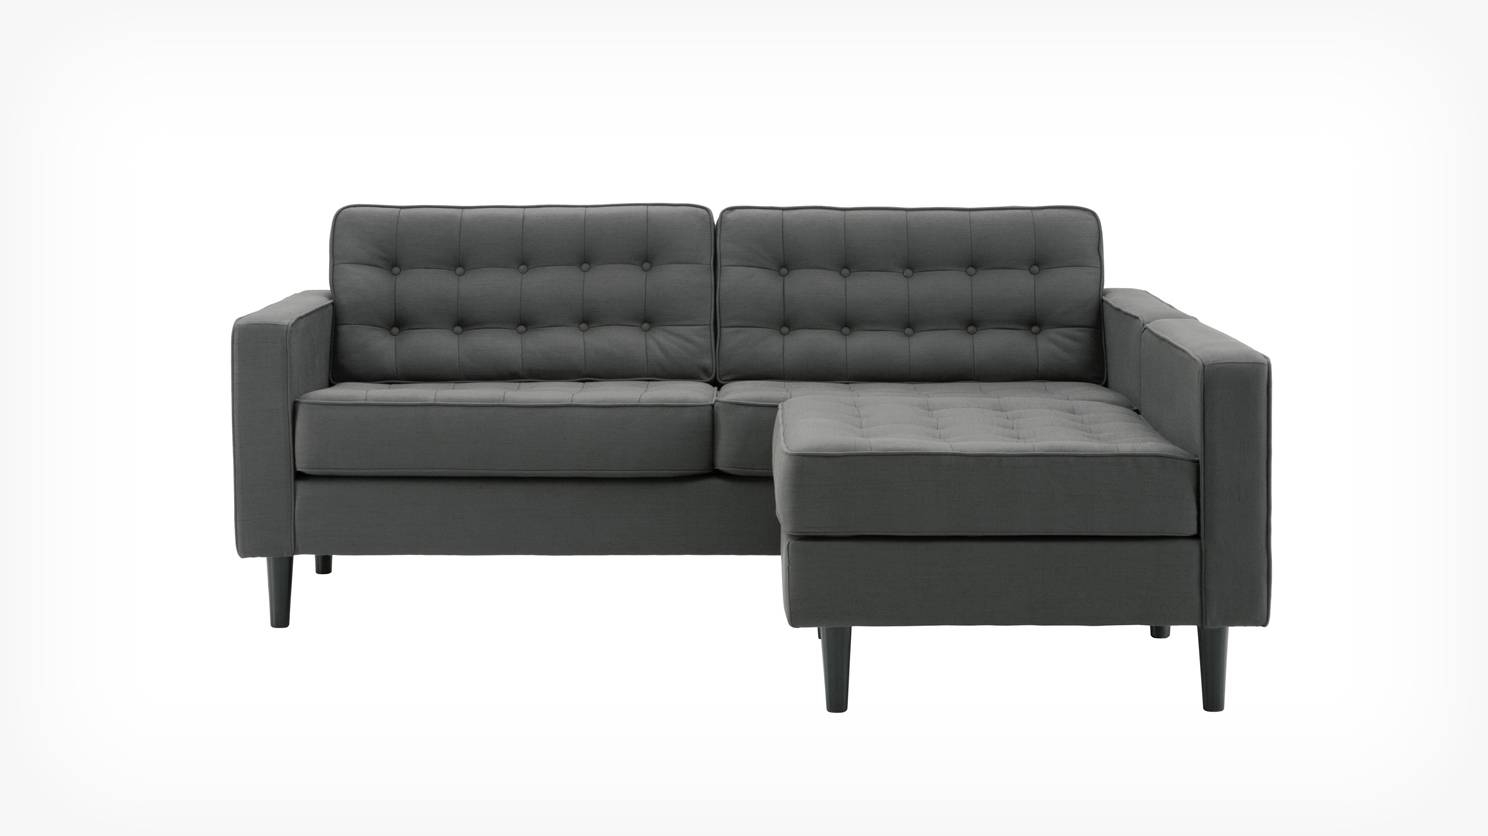 Eq3 | Living > Seating > Sectionals regarding Small 2 Piece Sectional Sofas (Image 13 of 30)